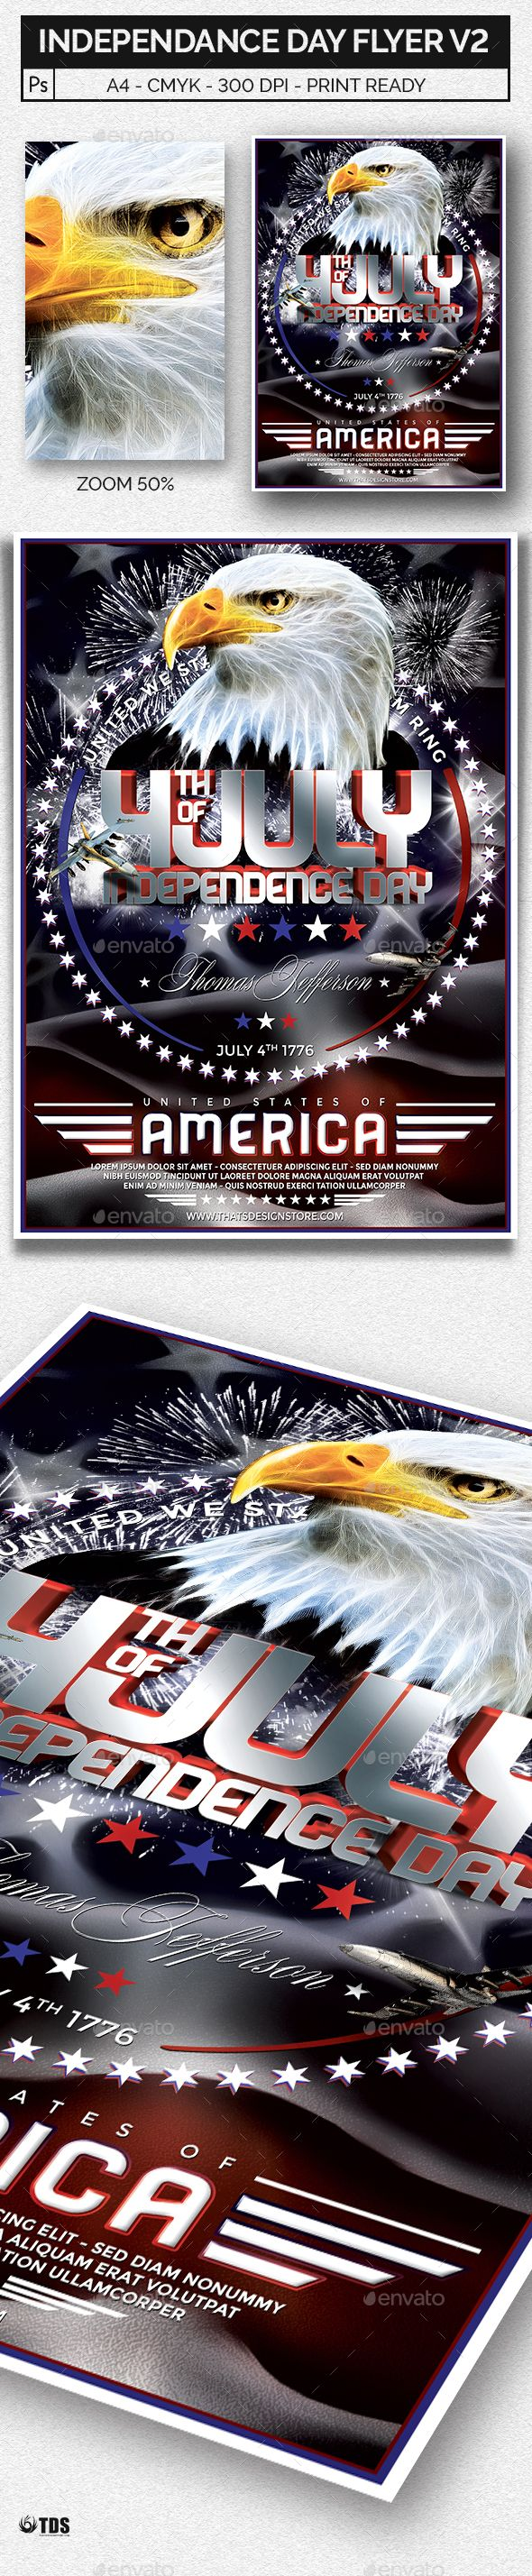 Independence Day Flyer Template V  Flyers Flyer Template And